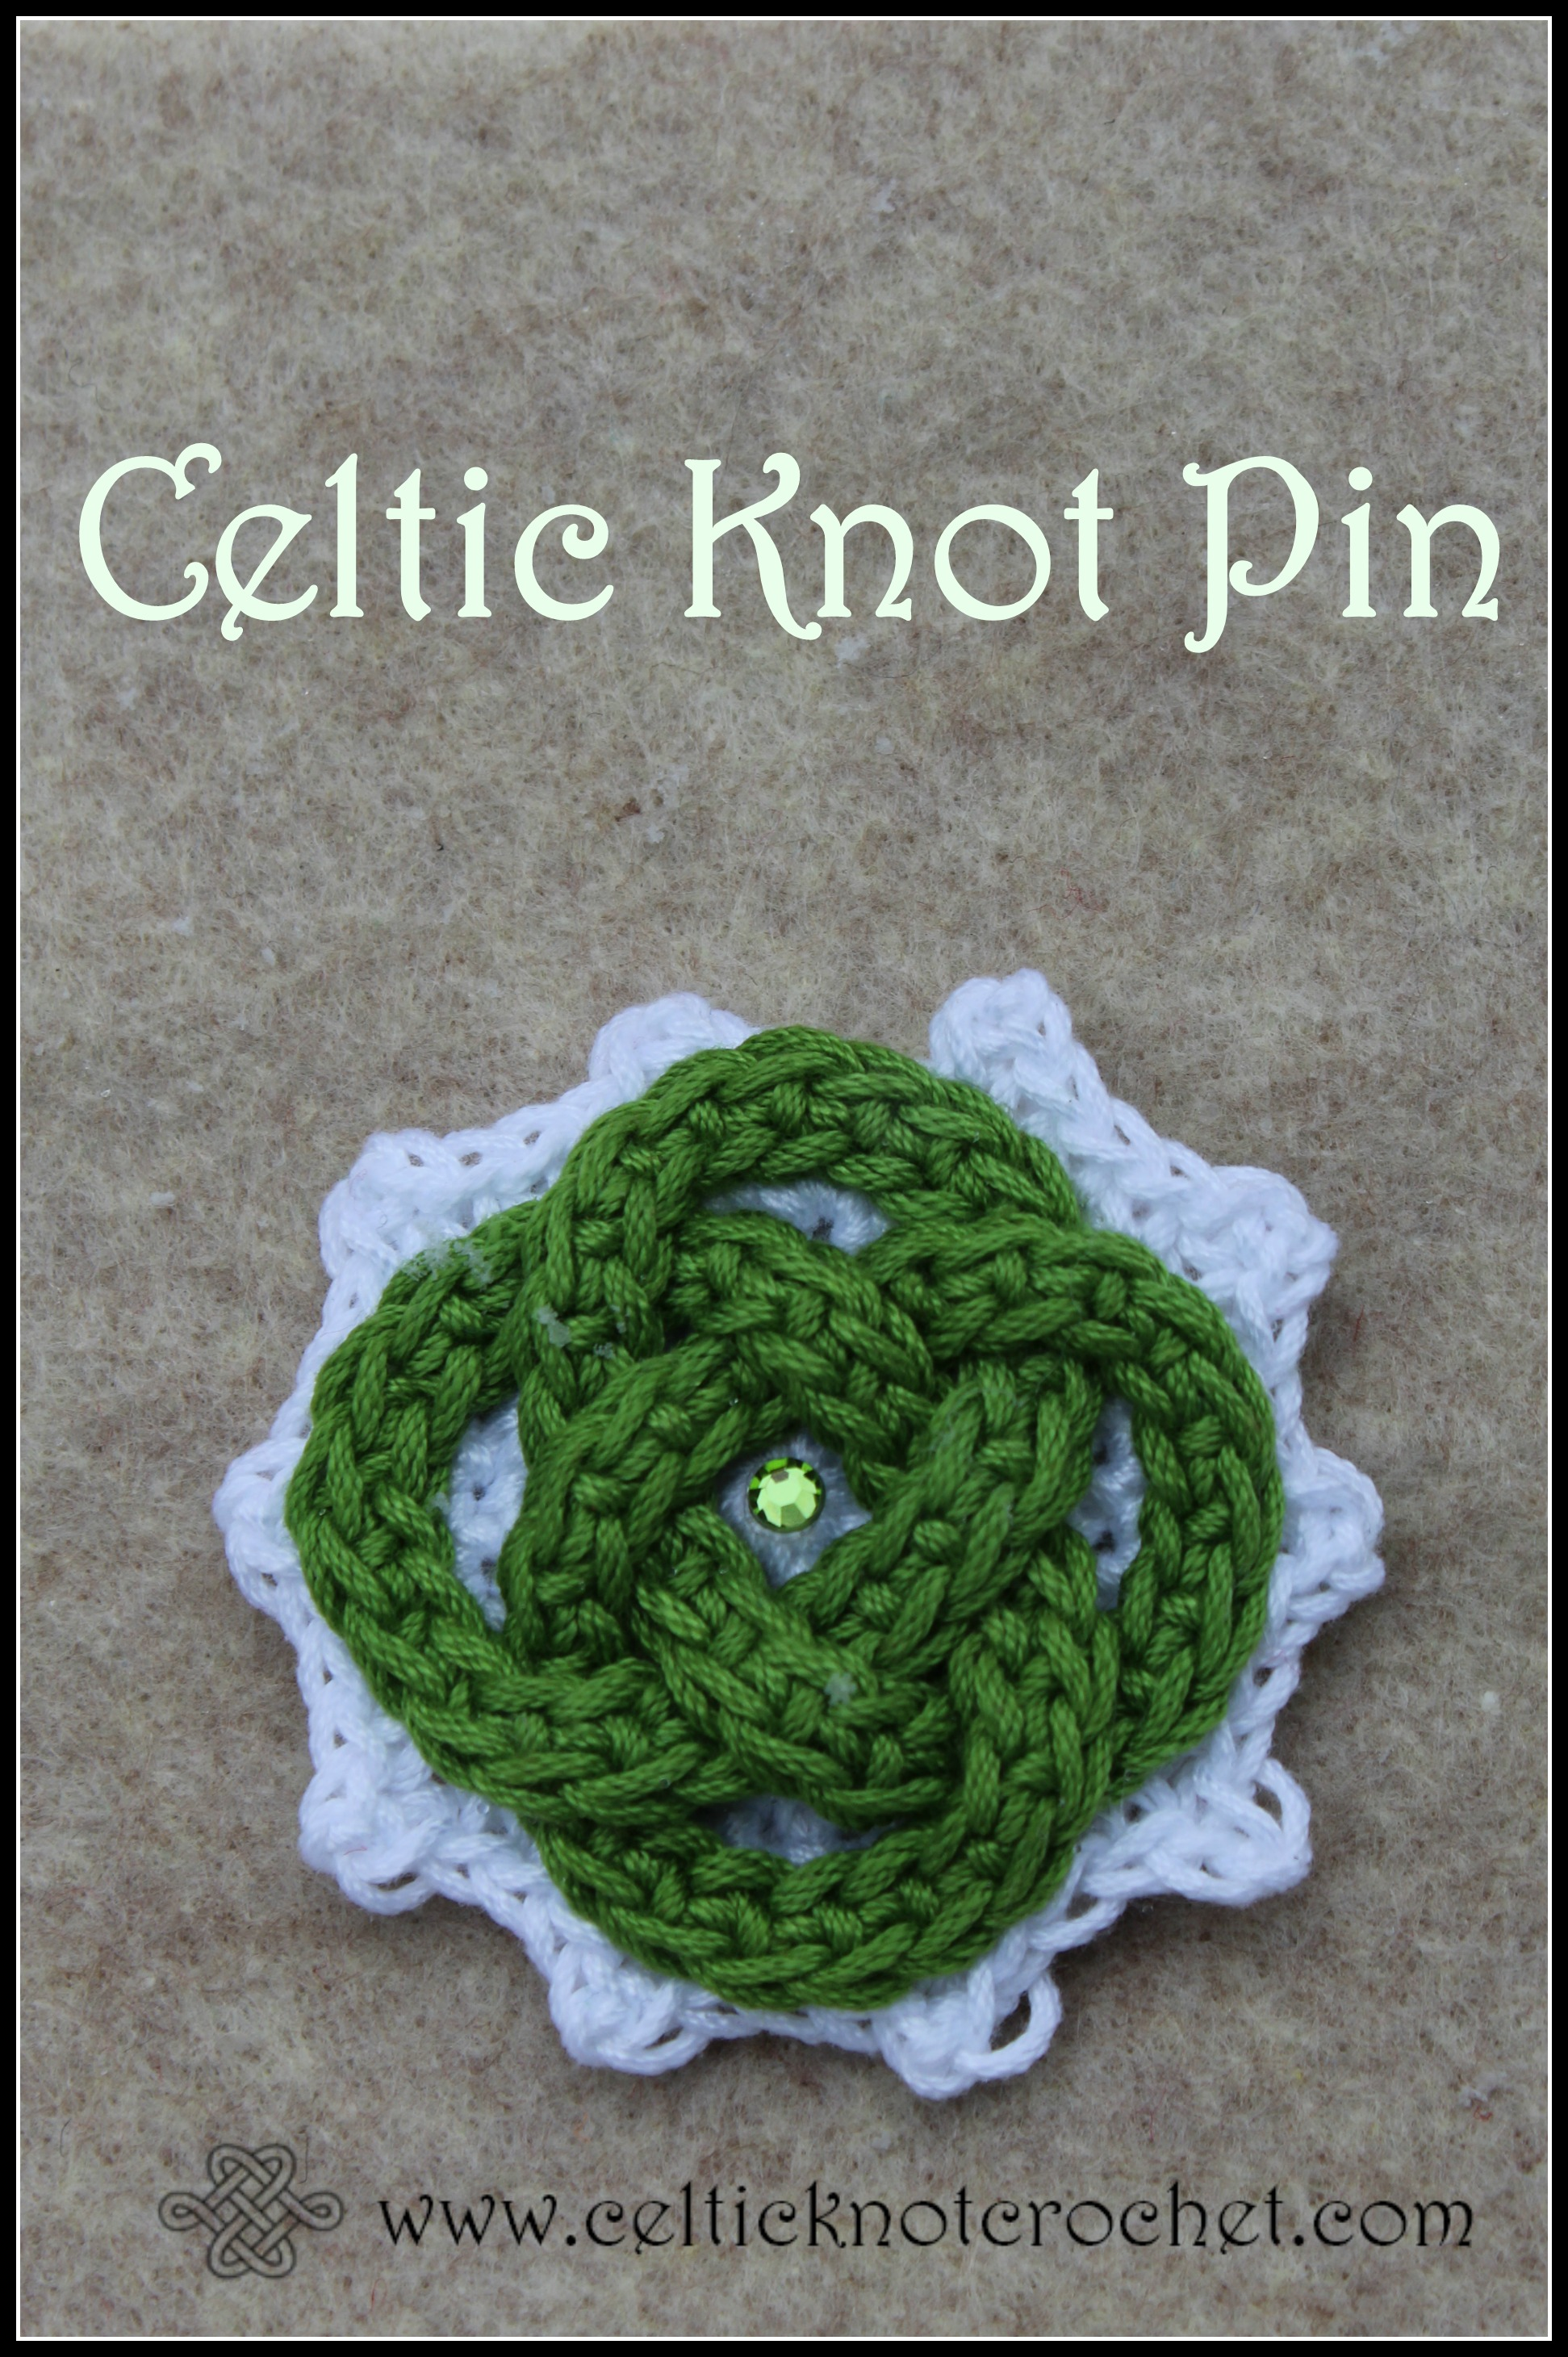 Celtic Knot Pin